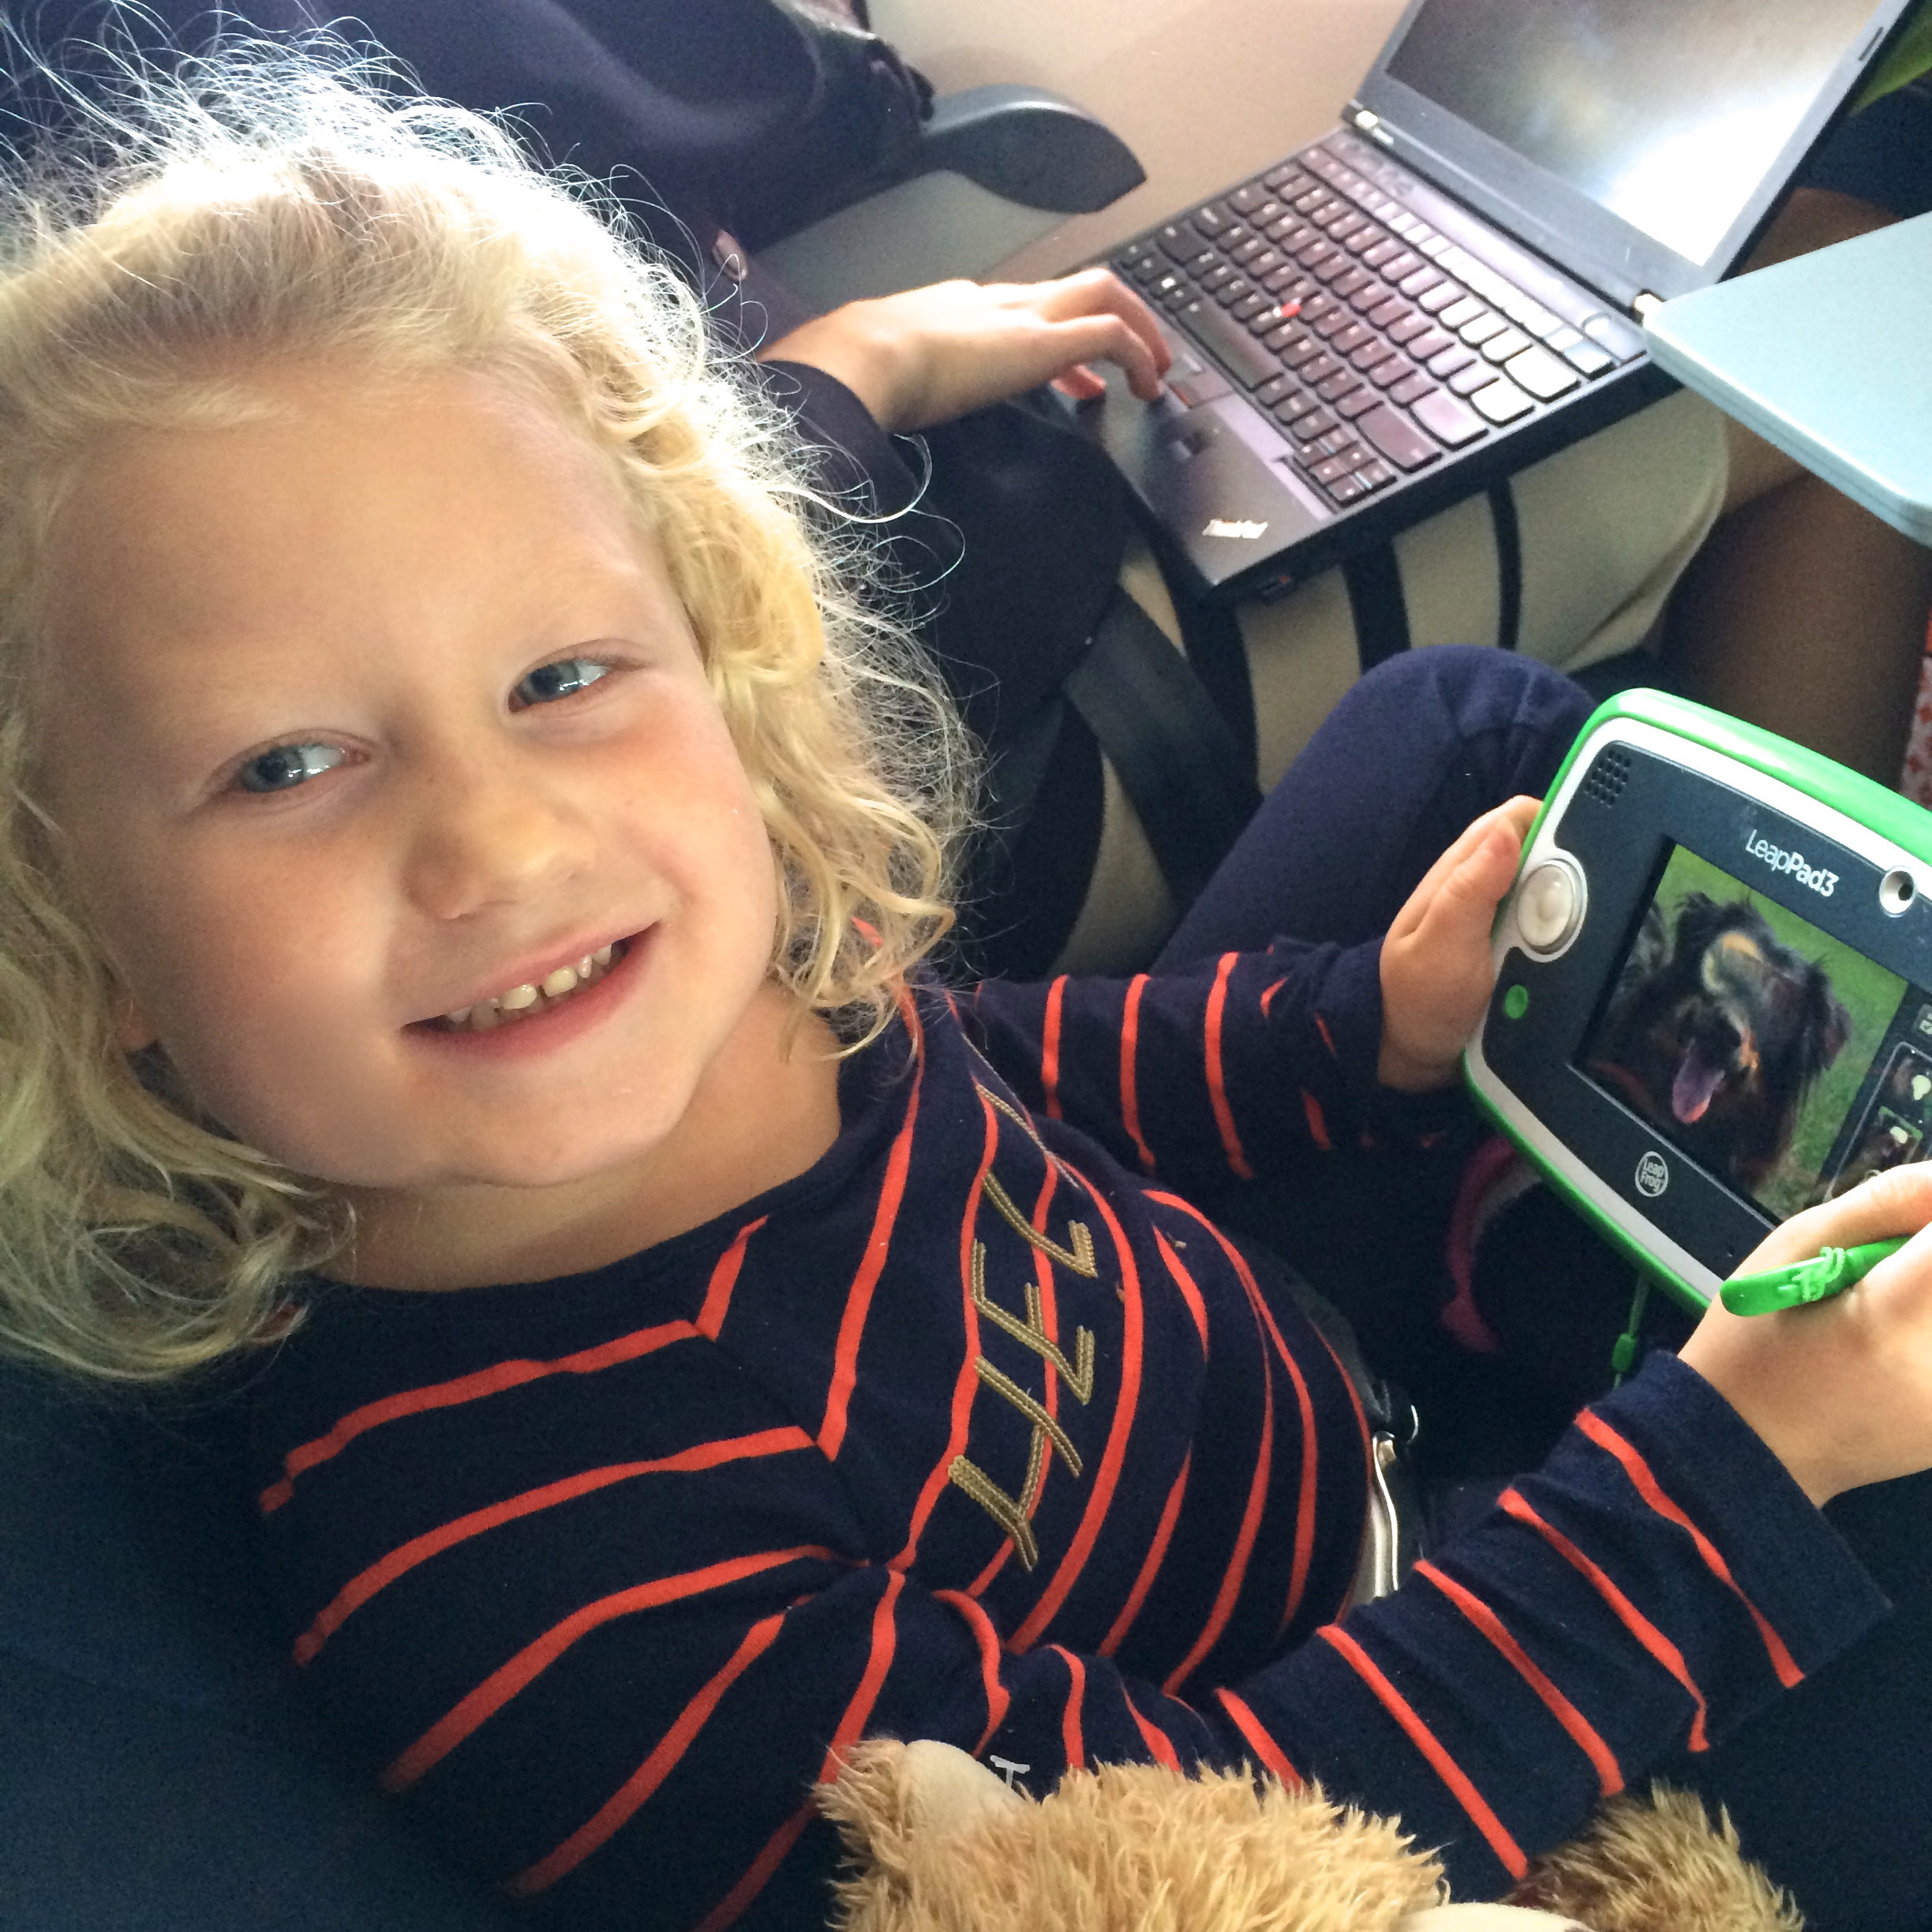 Hot Toys Kids will Love: LeapPad3 by Leapfrog!